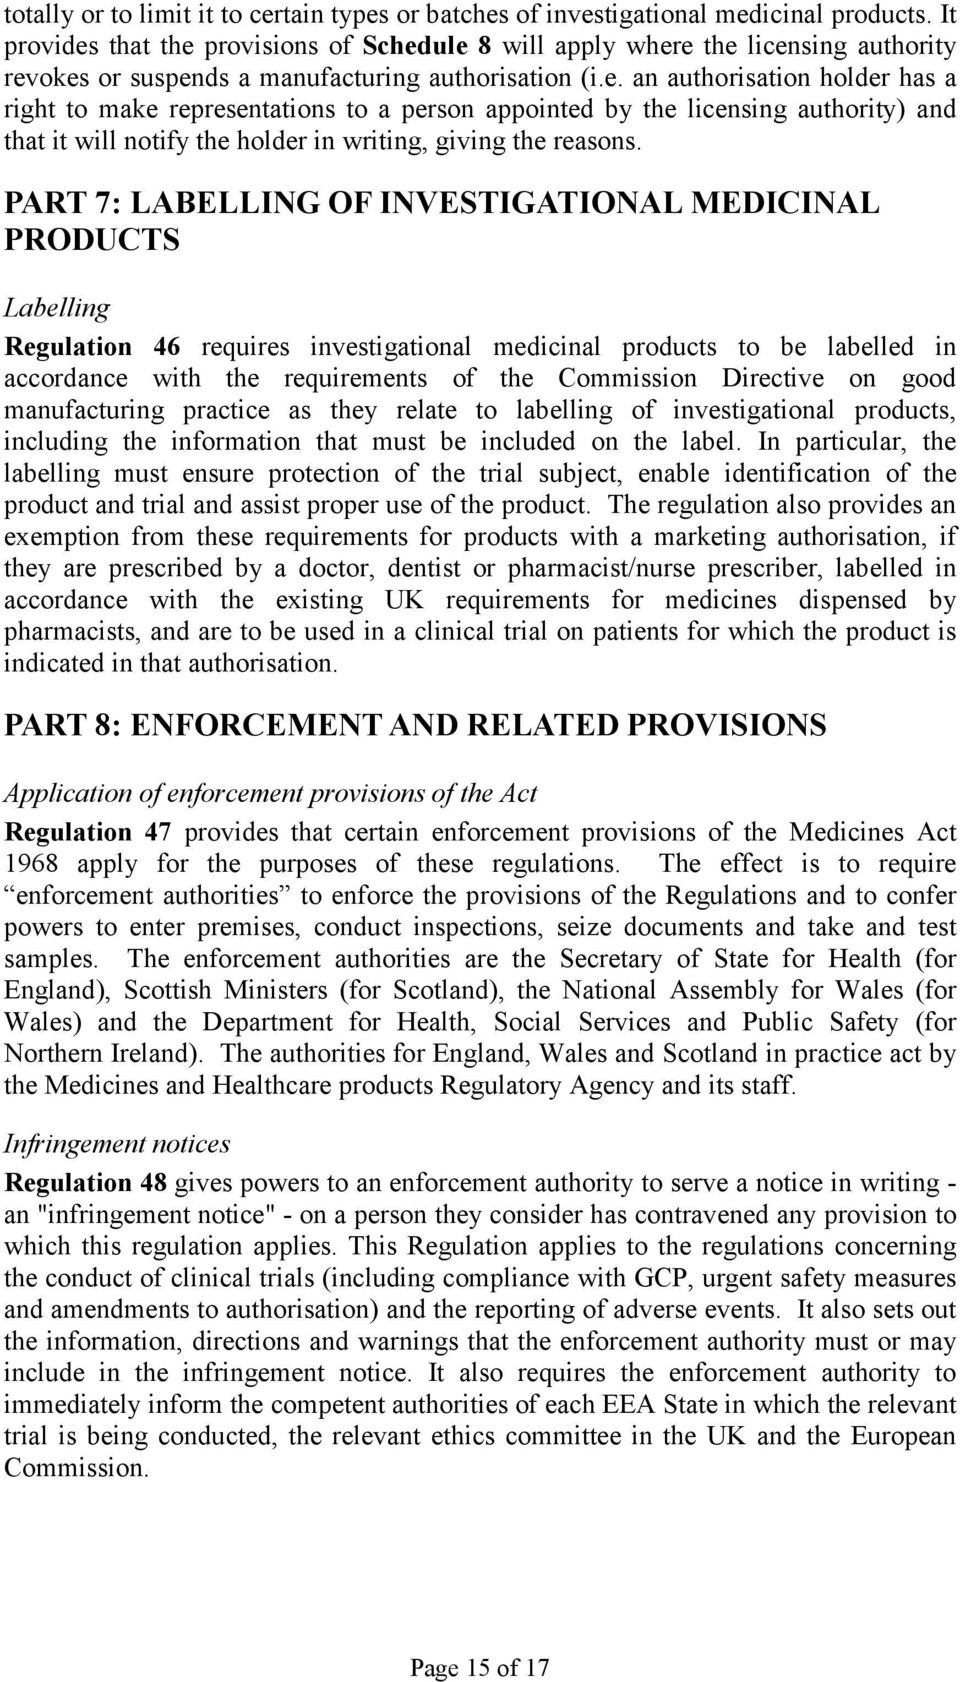 PART 7: LABELLING OF INVESTIGATIONAL MEDICINAL PRODUCTS Labelling Regulation 46 requires investigational medicinal products to be labelled in accordance with the requirements of the Commission